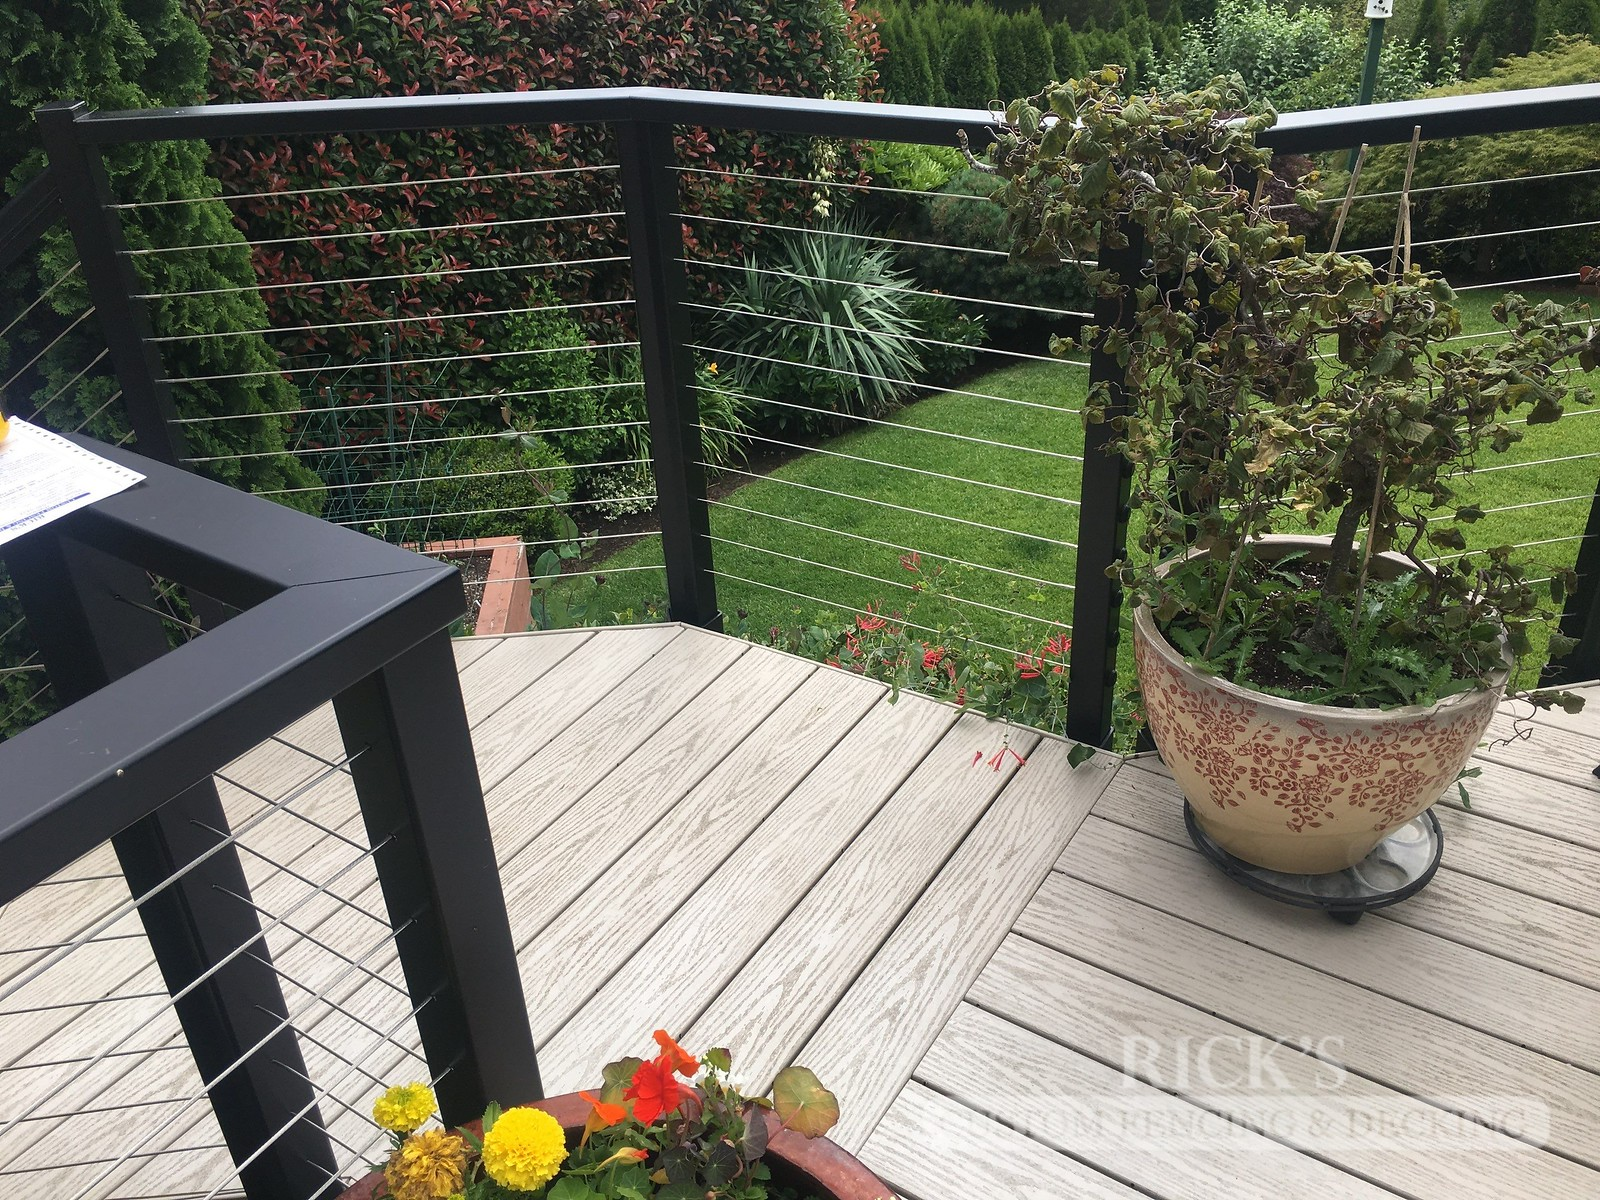 1711 - Aluminum Handrail with Stainless Steel Cable